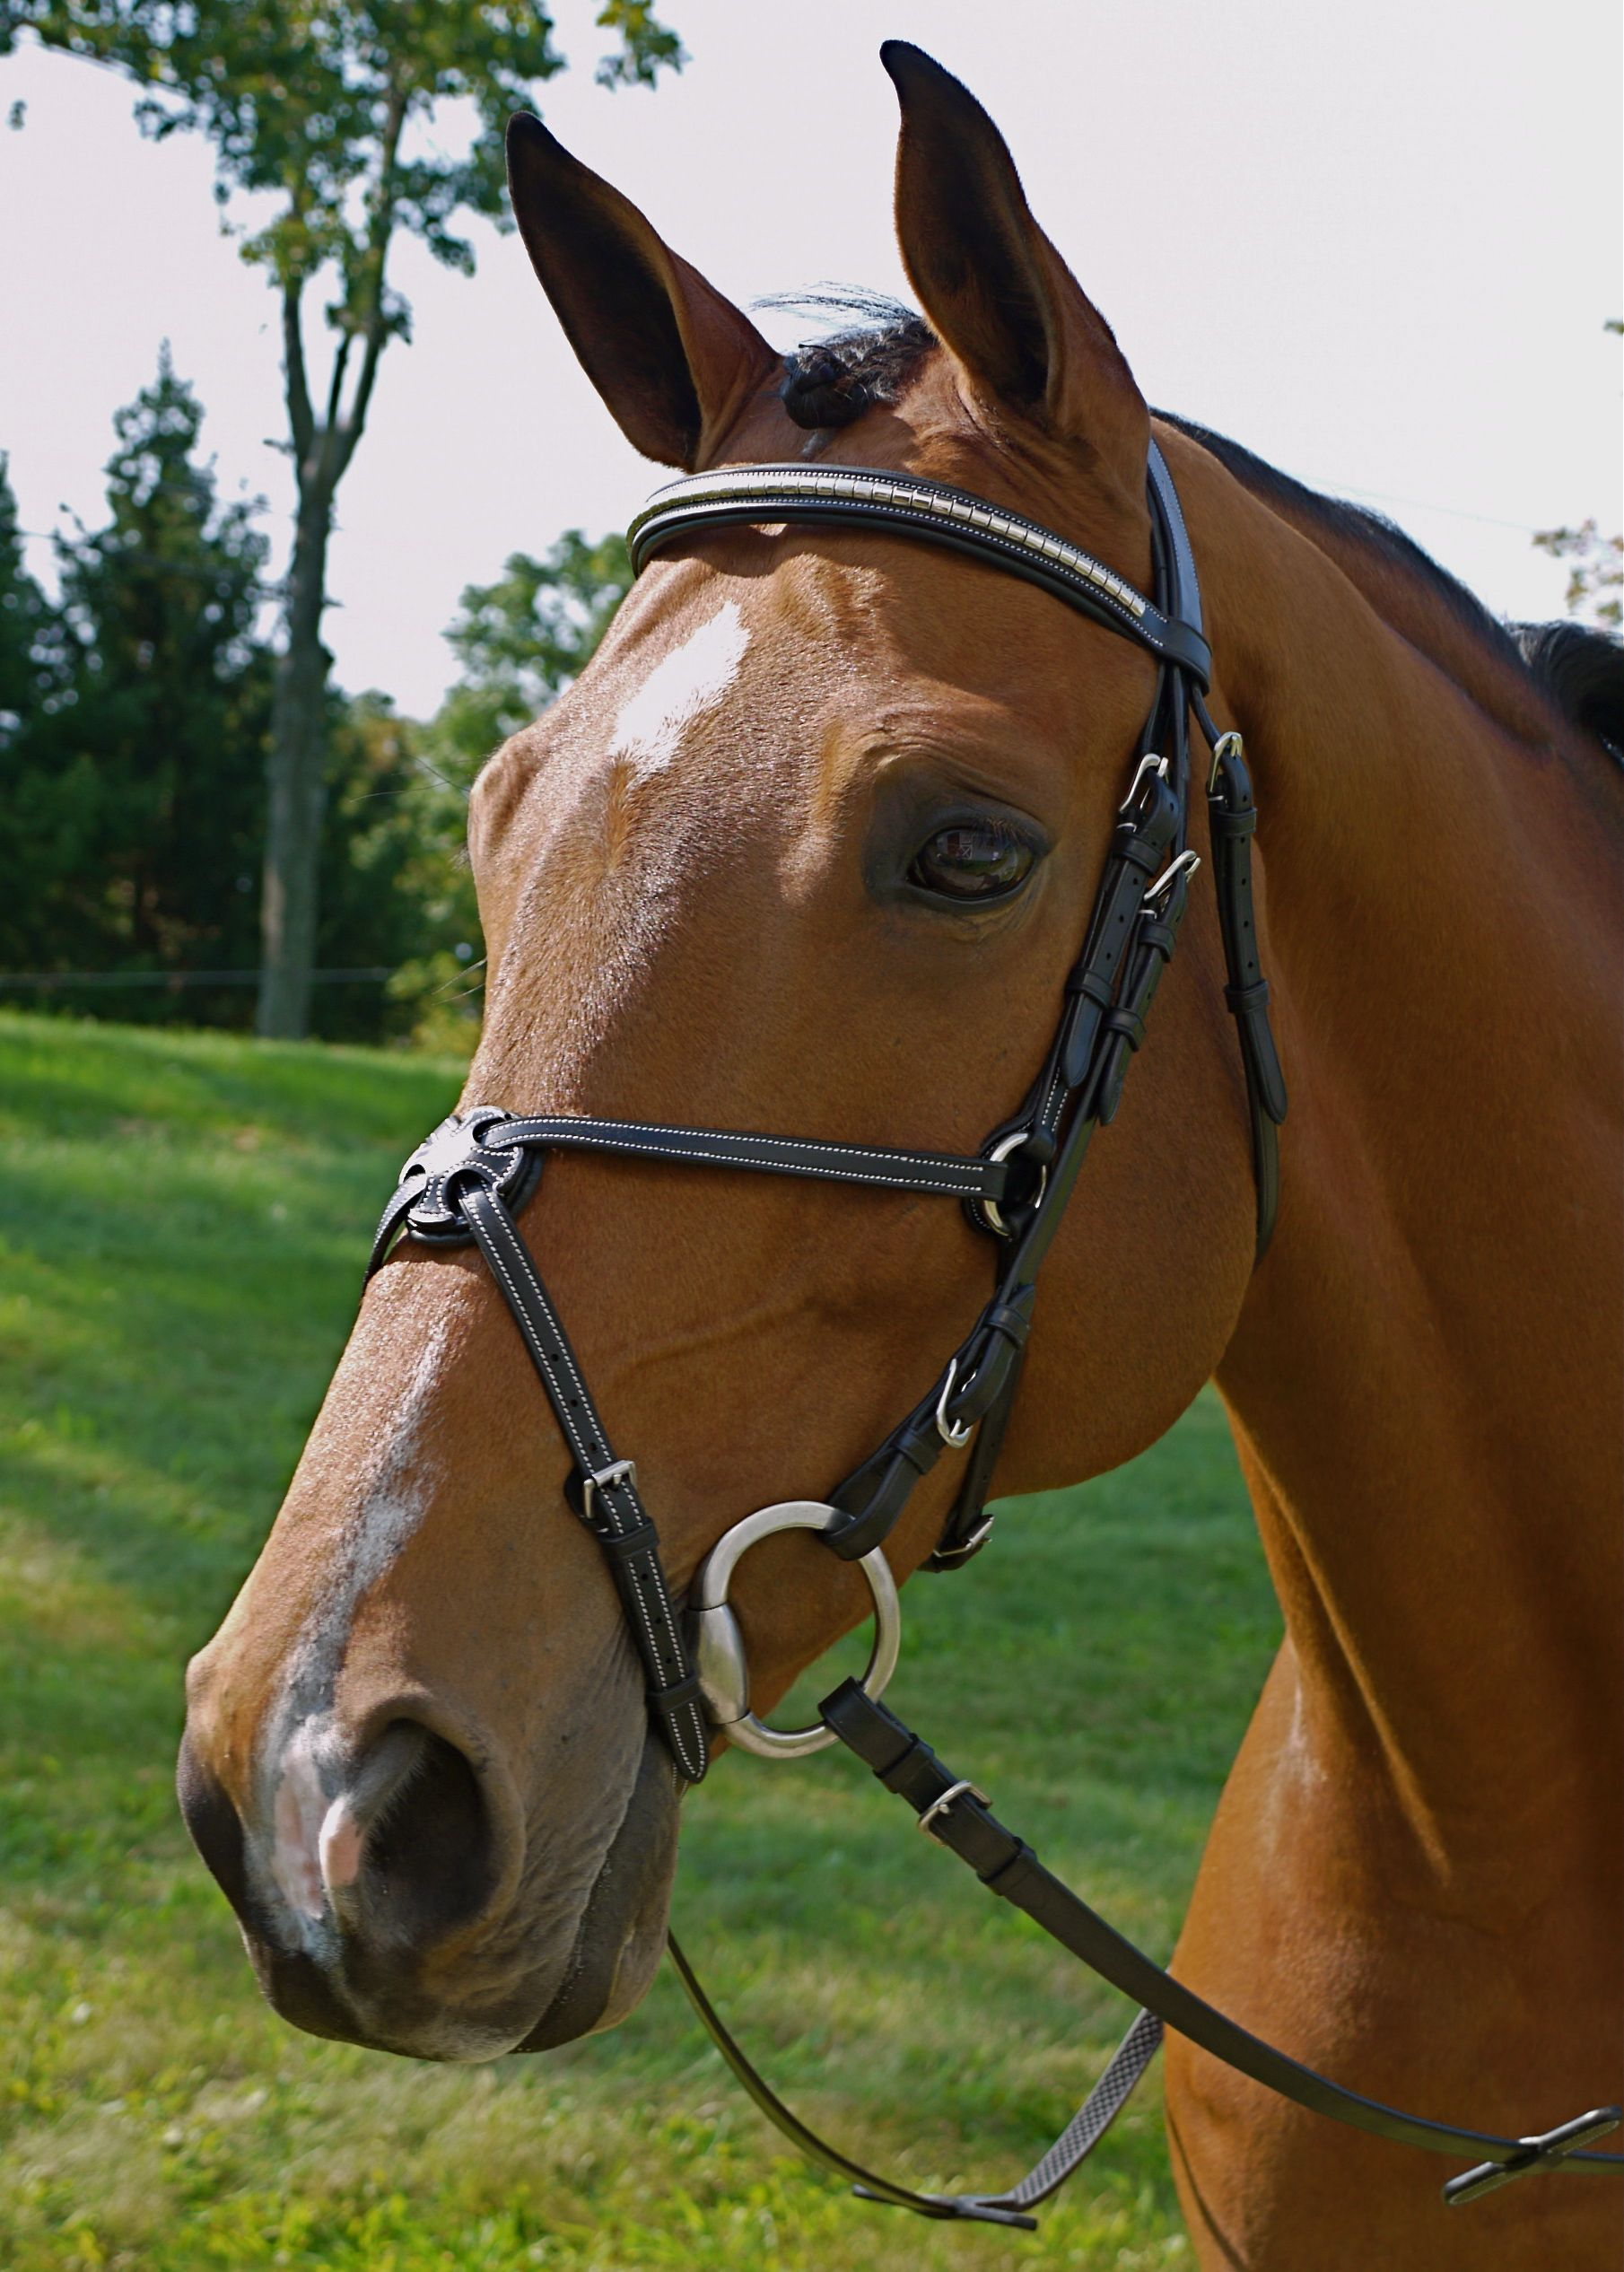 kingsbury figure eight bridle make a statement with the